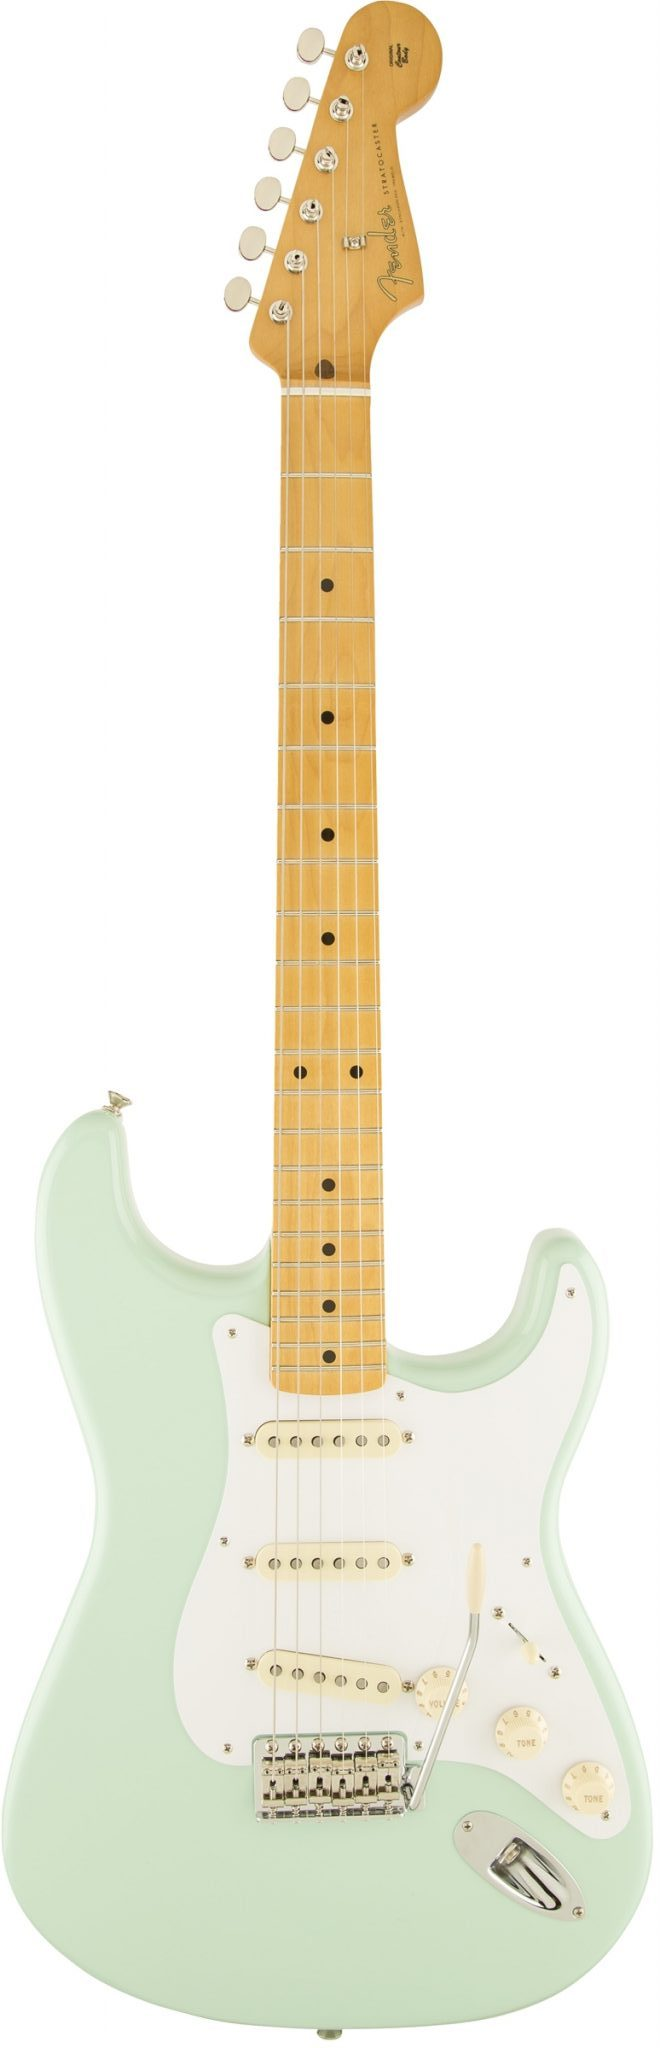 Fender Classic '50's Stratocaster